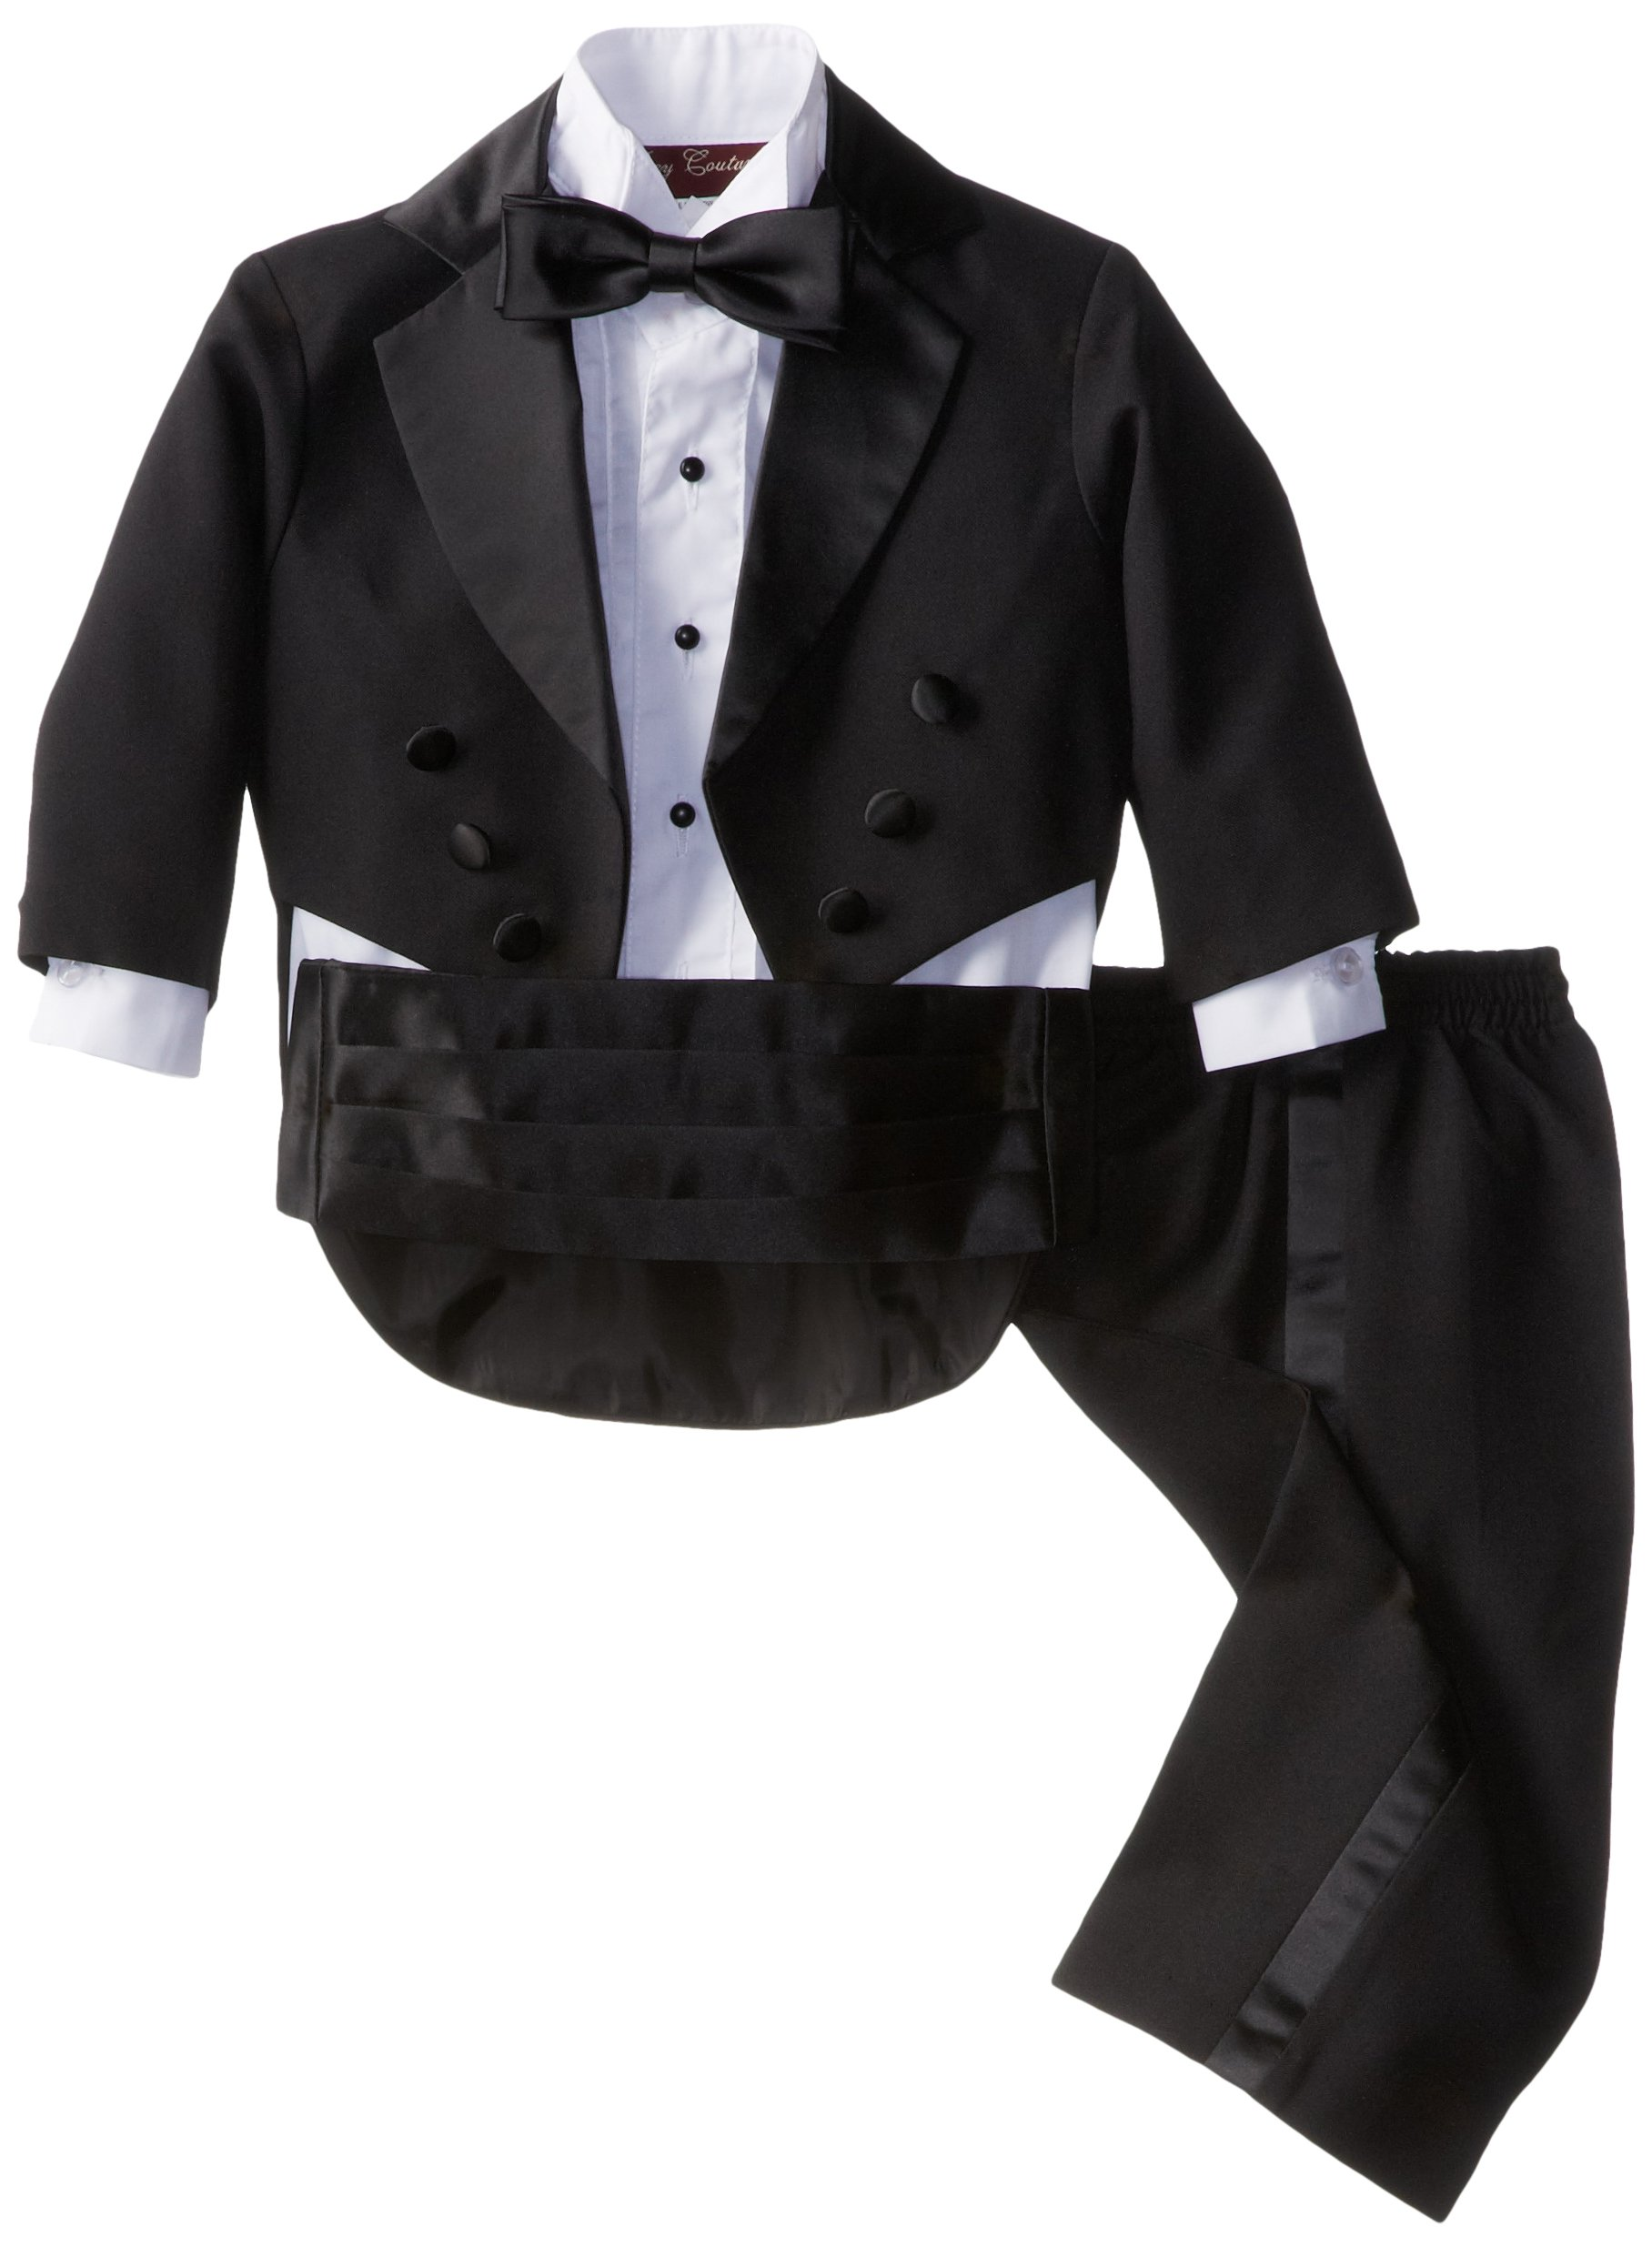 Joey Couture Baby Boys' Tuxedo Suit Tail, Black, 18 Months/Large by Joey Couture